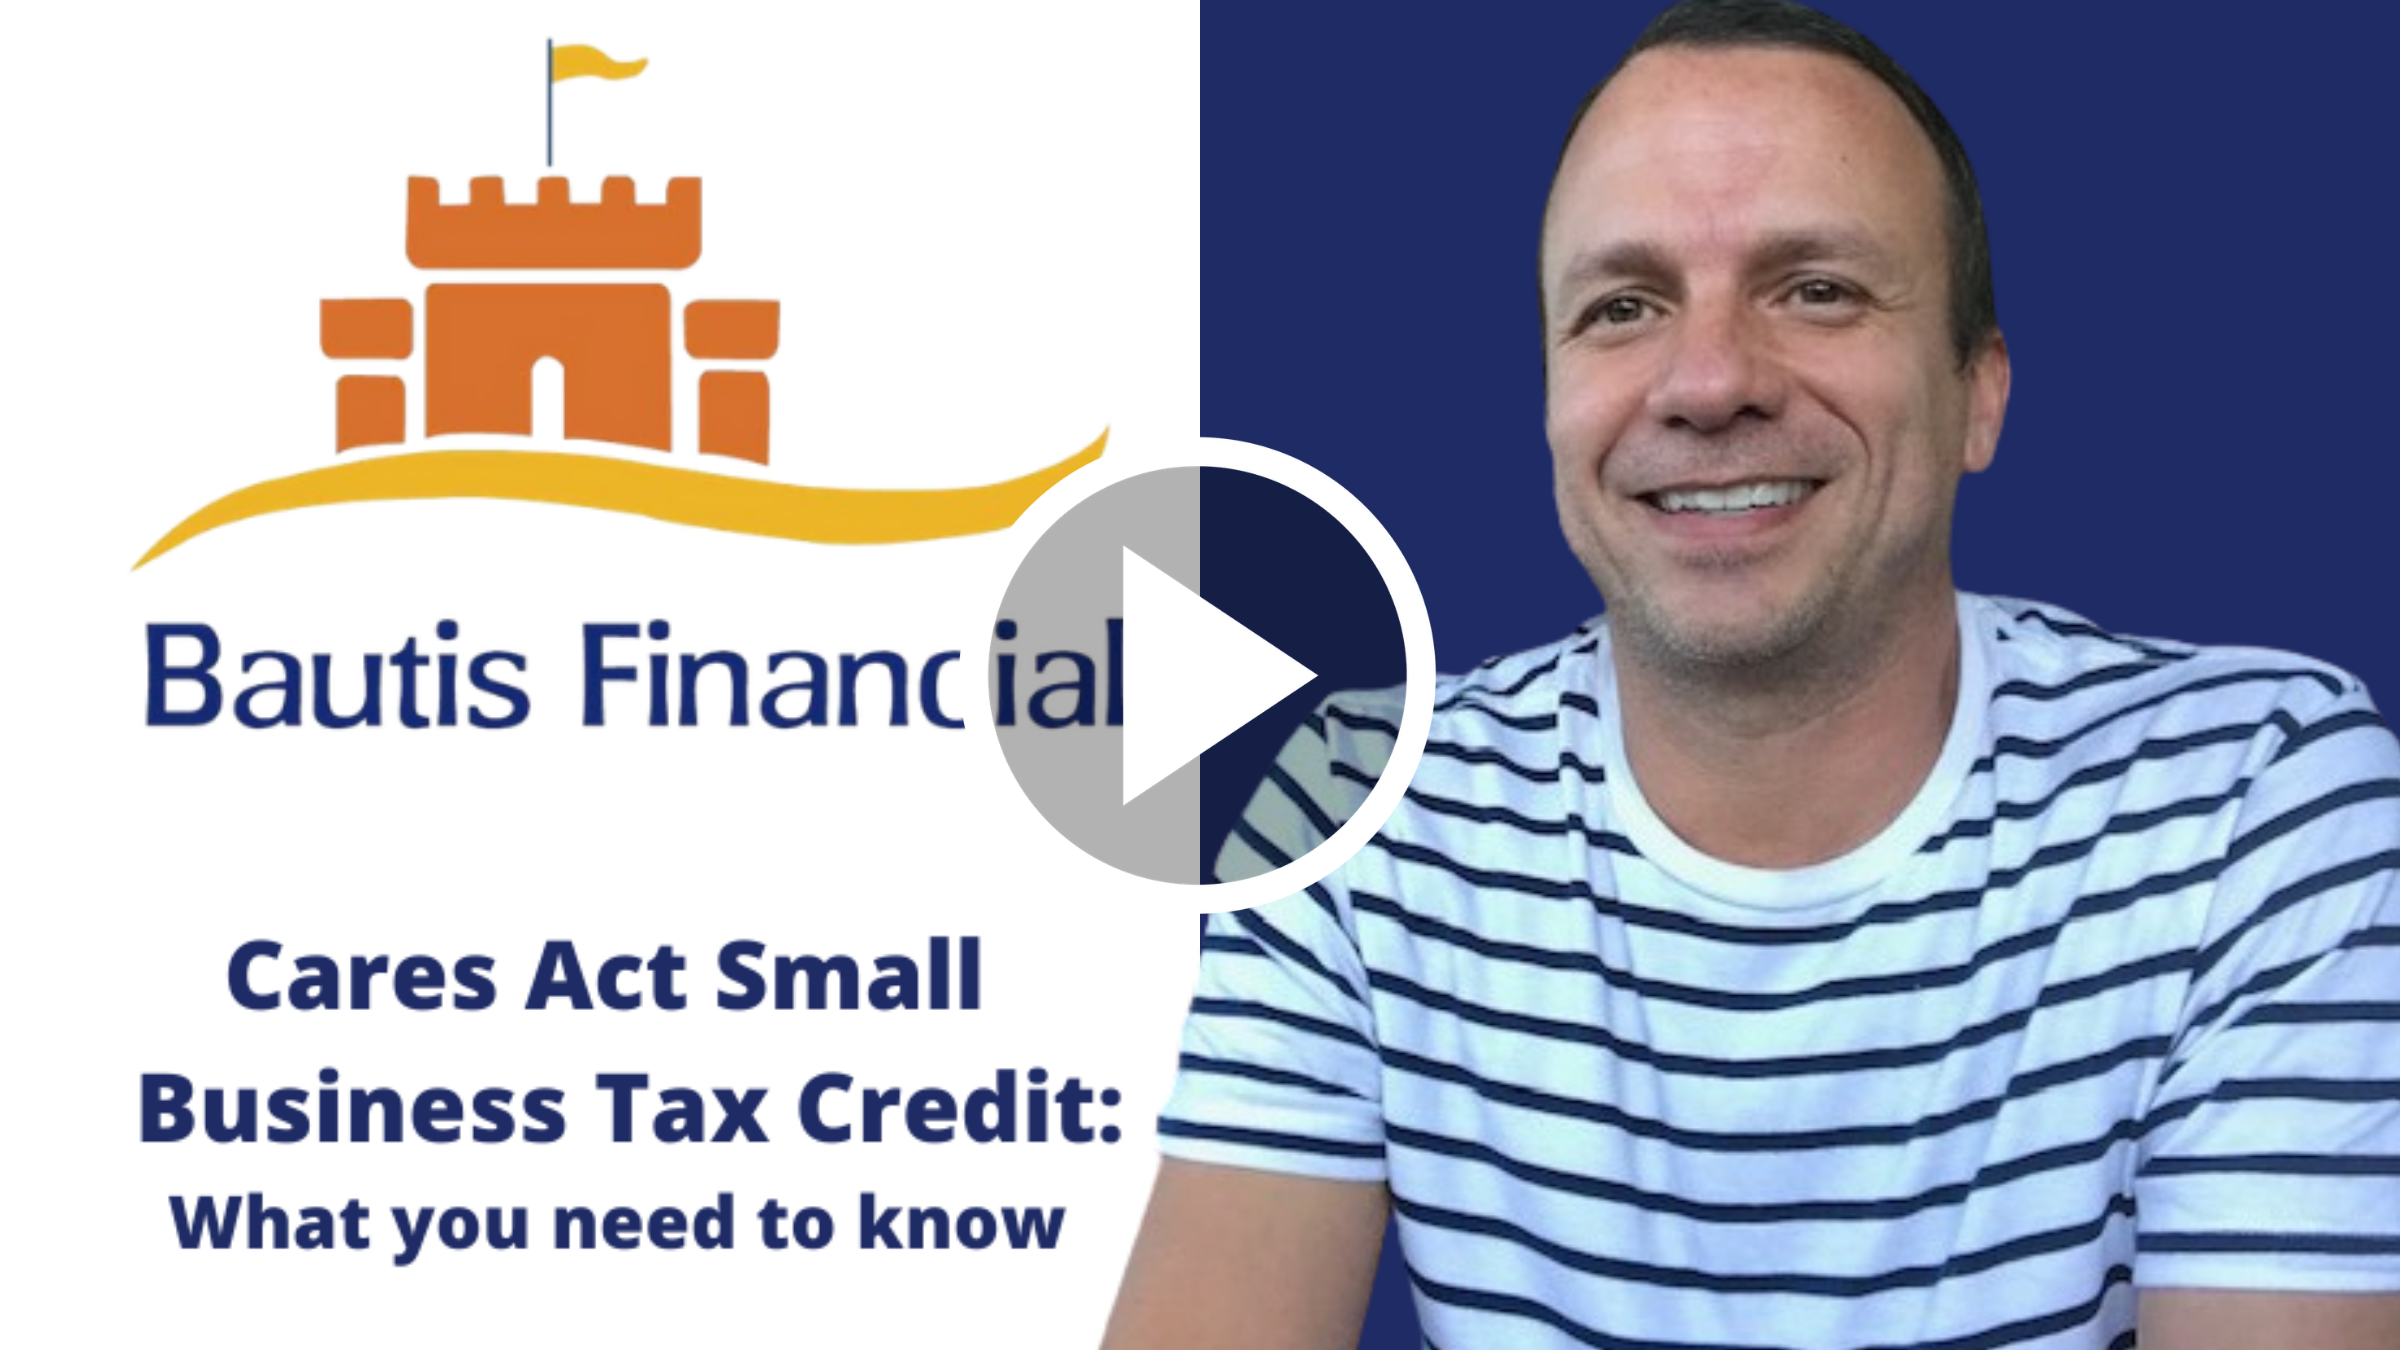 Cares Act Small Business Tax Credit Information